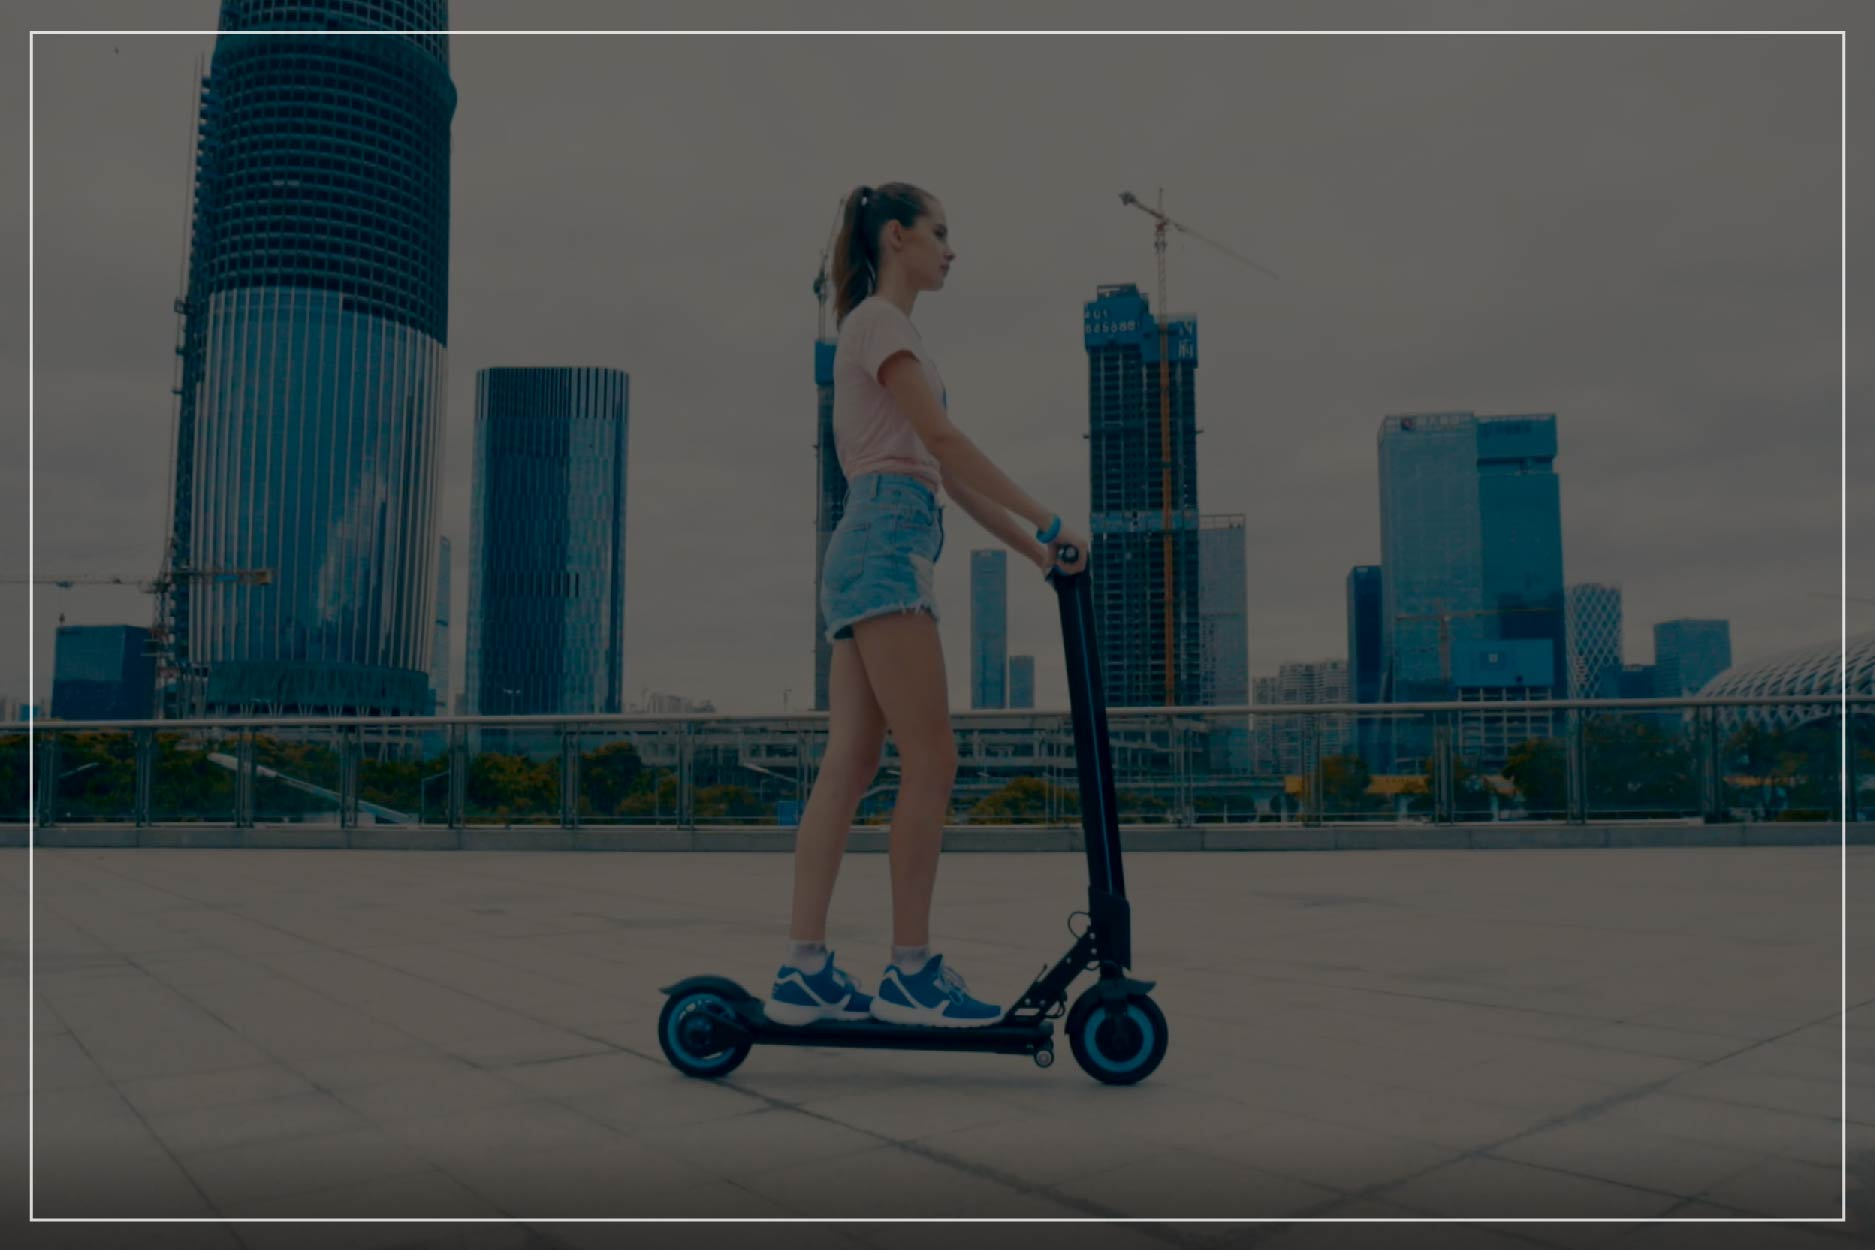 Freemotion - Electric Unicycles & Scooters for Easy Mobility